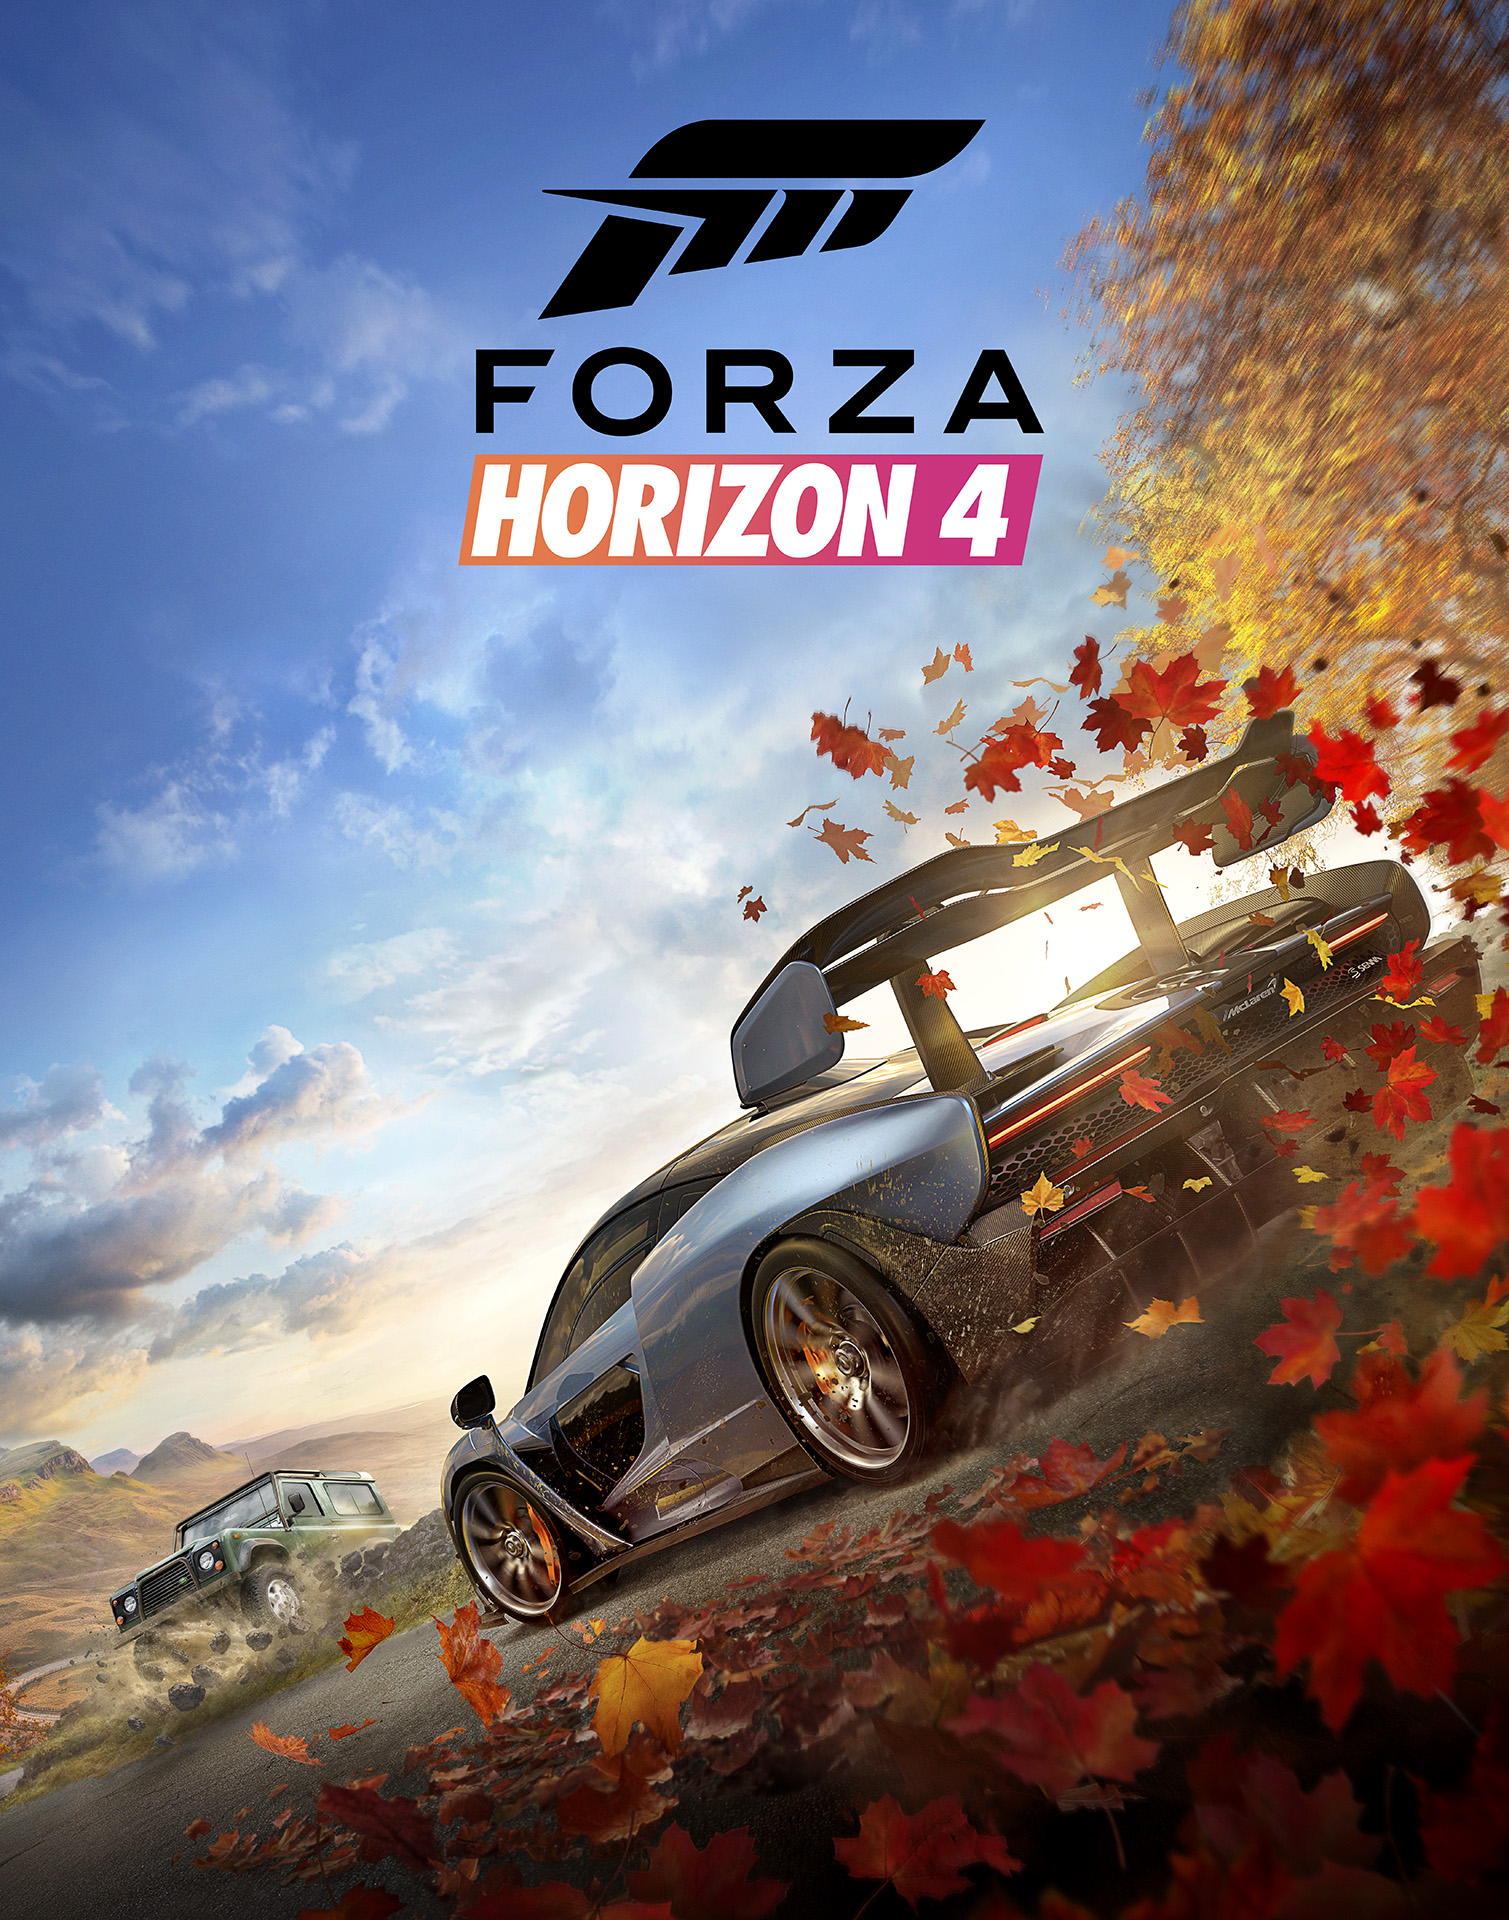 forza horizon 4 forza motorsport wiki fandom powered. Black Bedroom Furniture Sets. Home Design Ideas